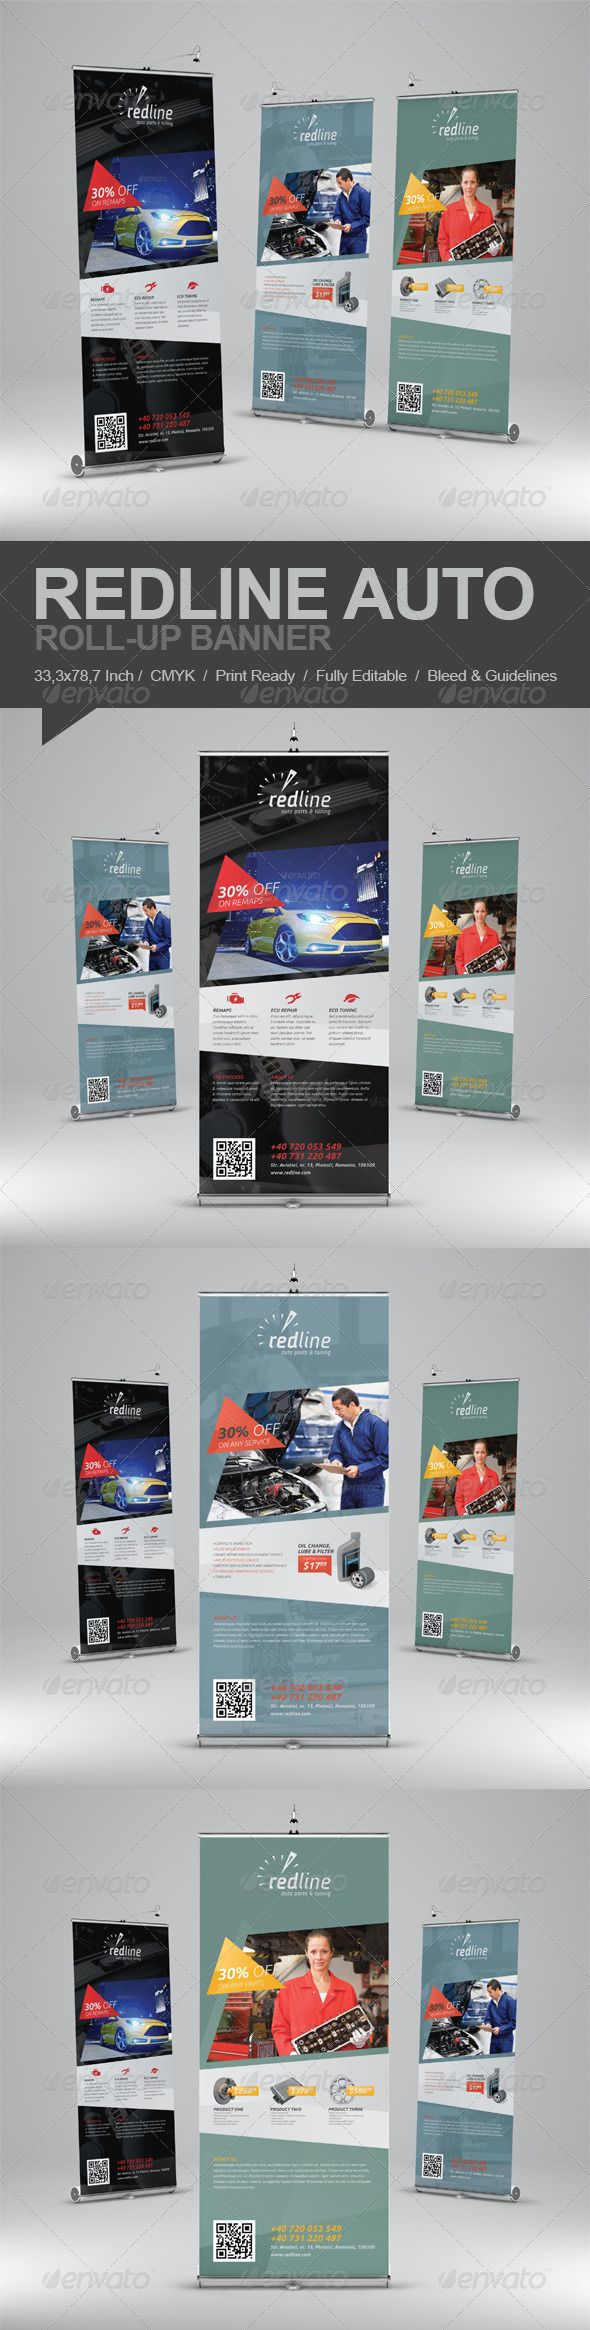 Best Standee Images On Pinterest Banner Design Web Banners - Vinyl business bannersbusiness signs banners promotionshop for promotional business